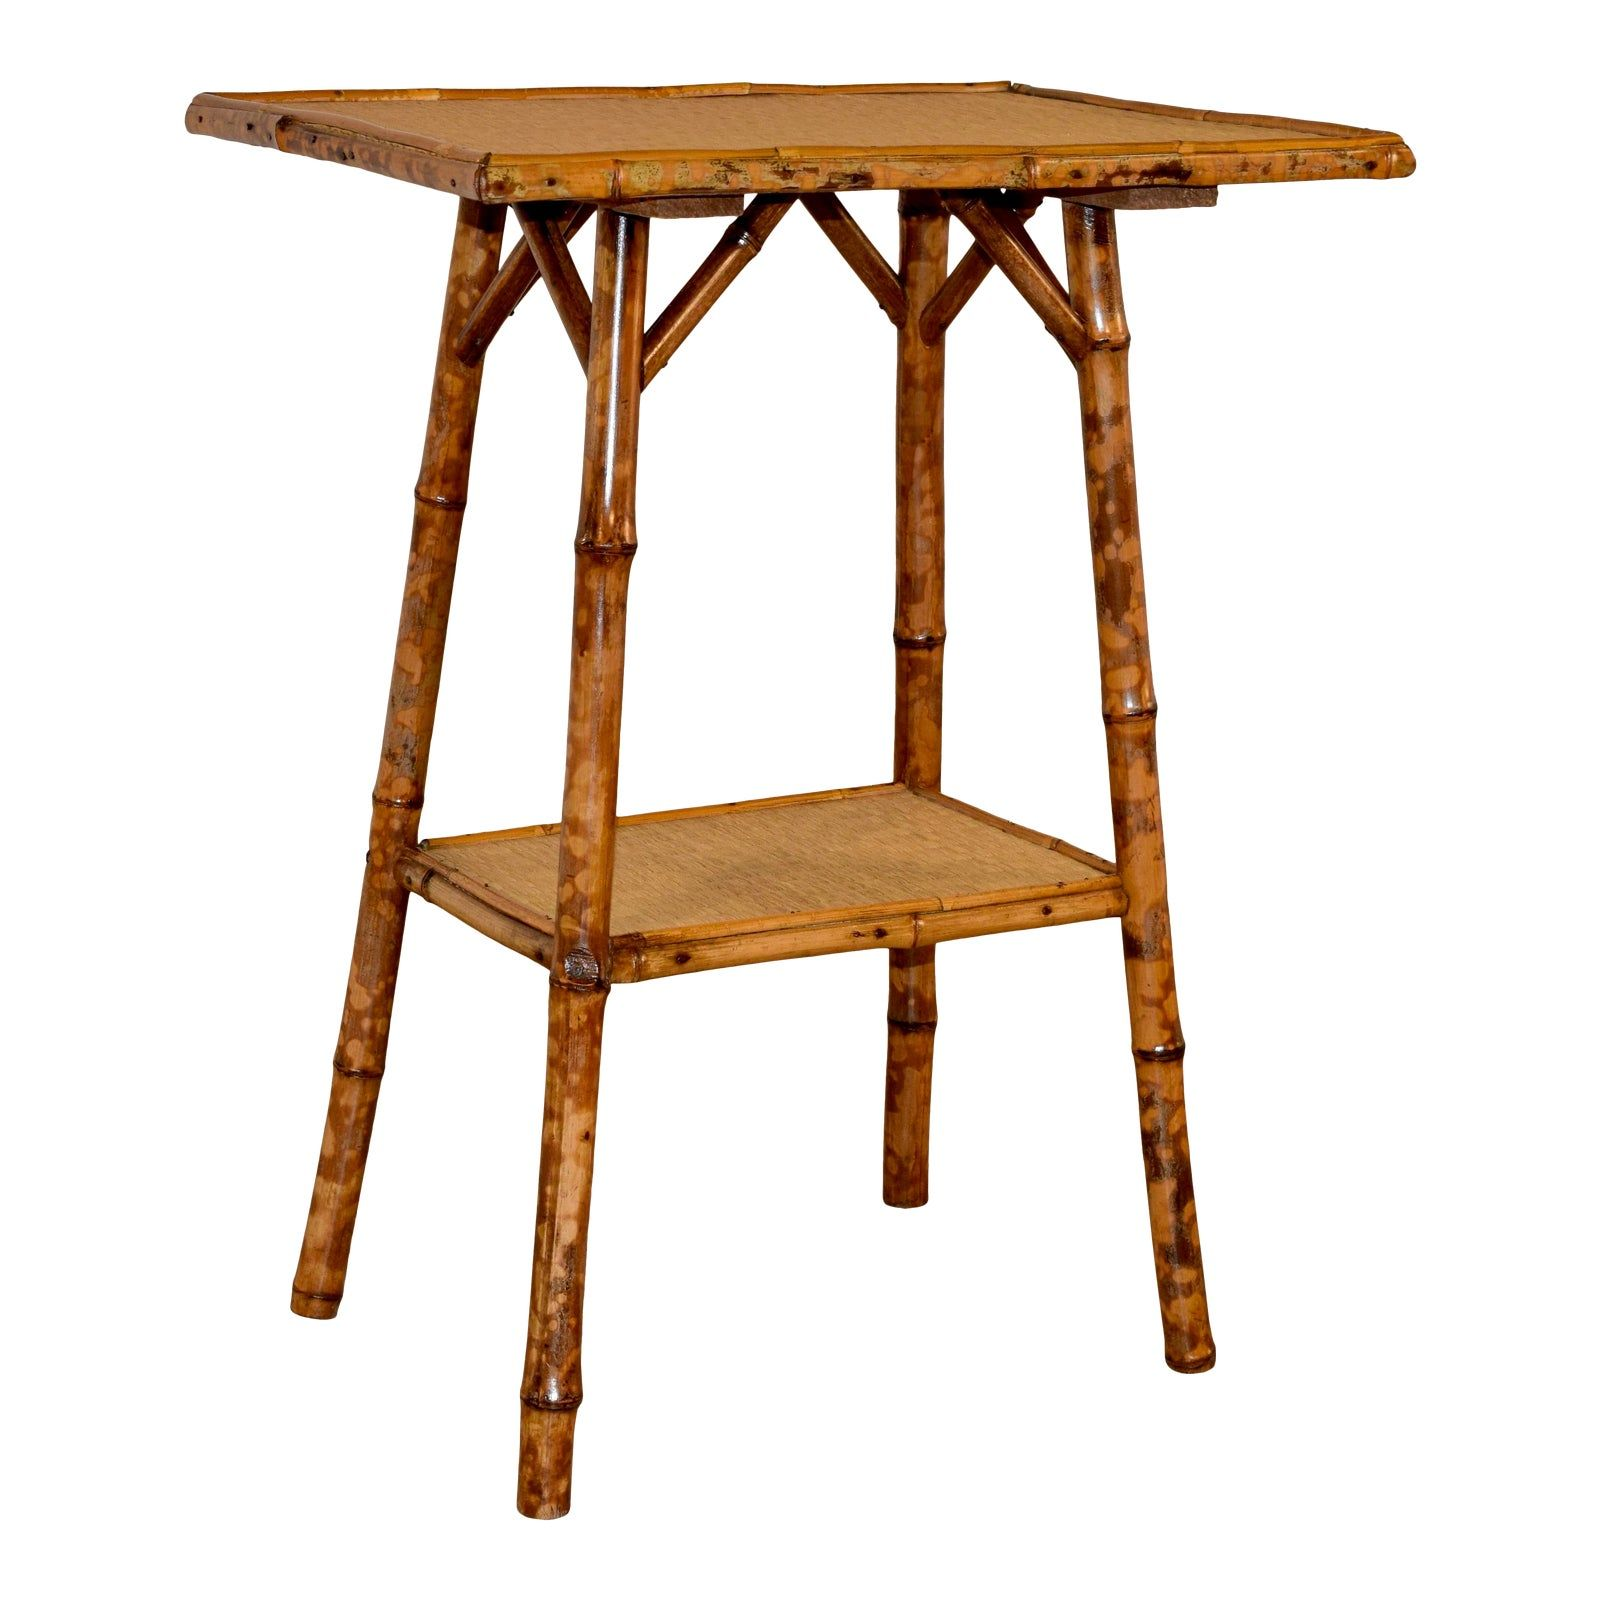 19th C Tortoise Bamboo Table in 2020 Bamboo table, Table